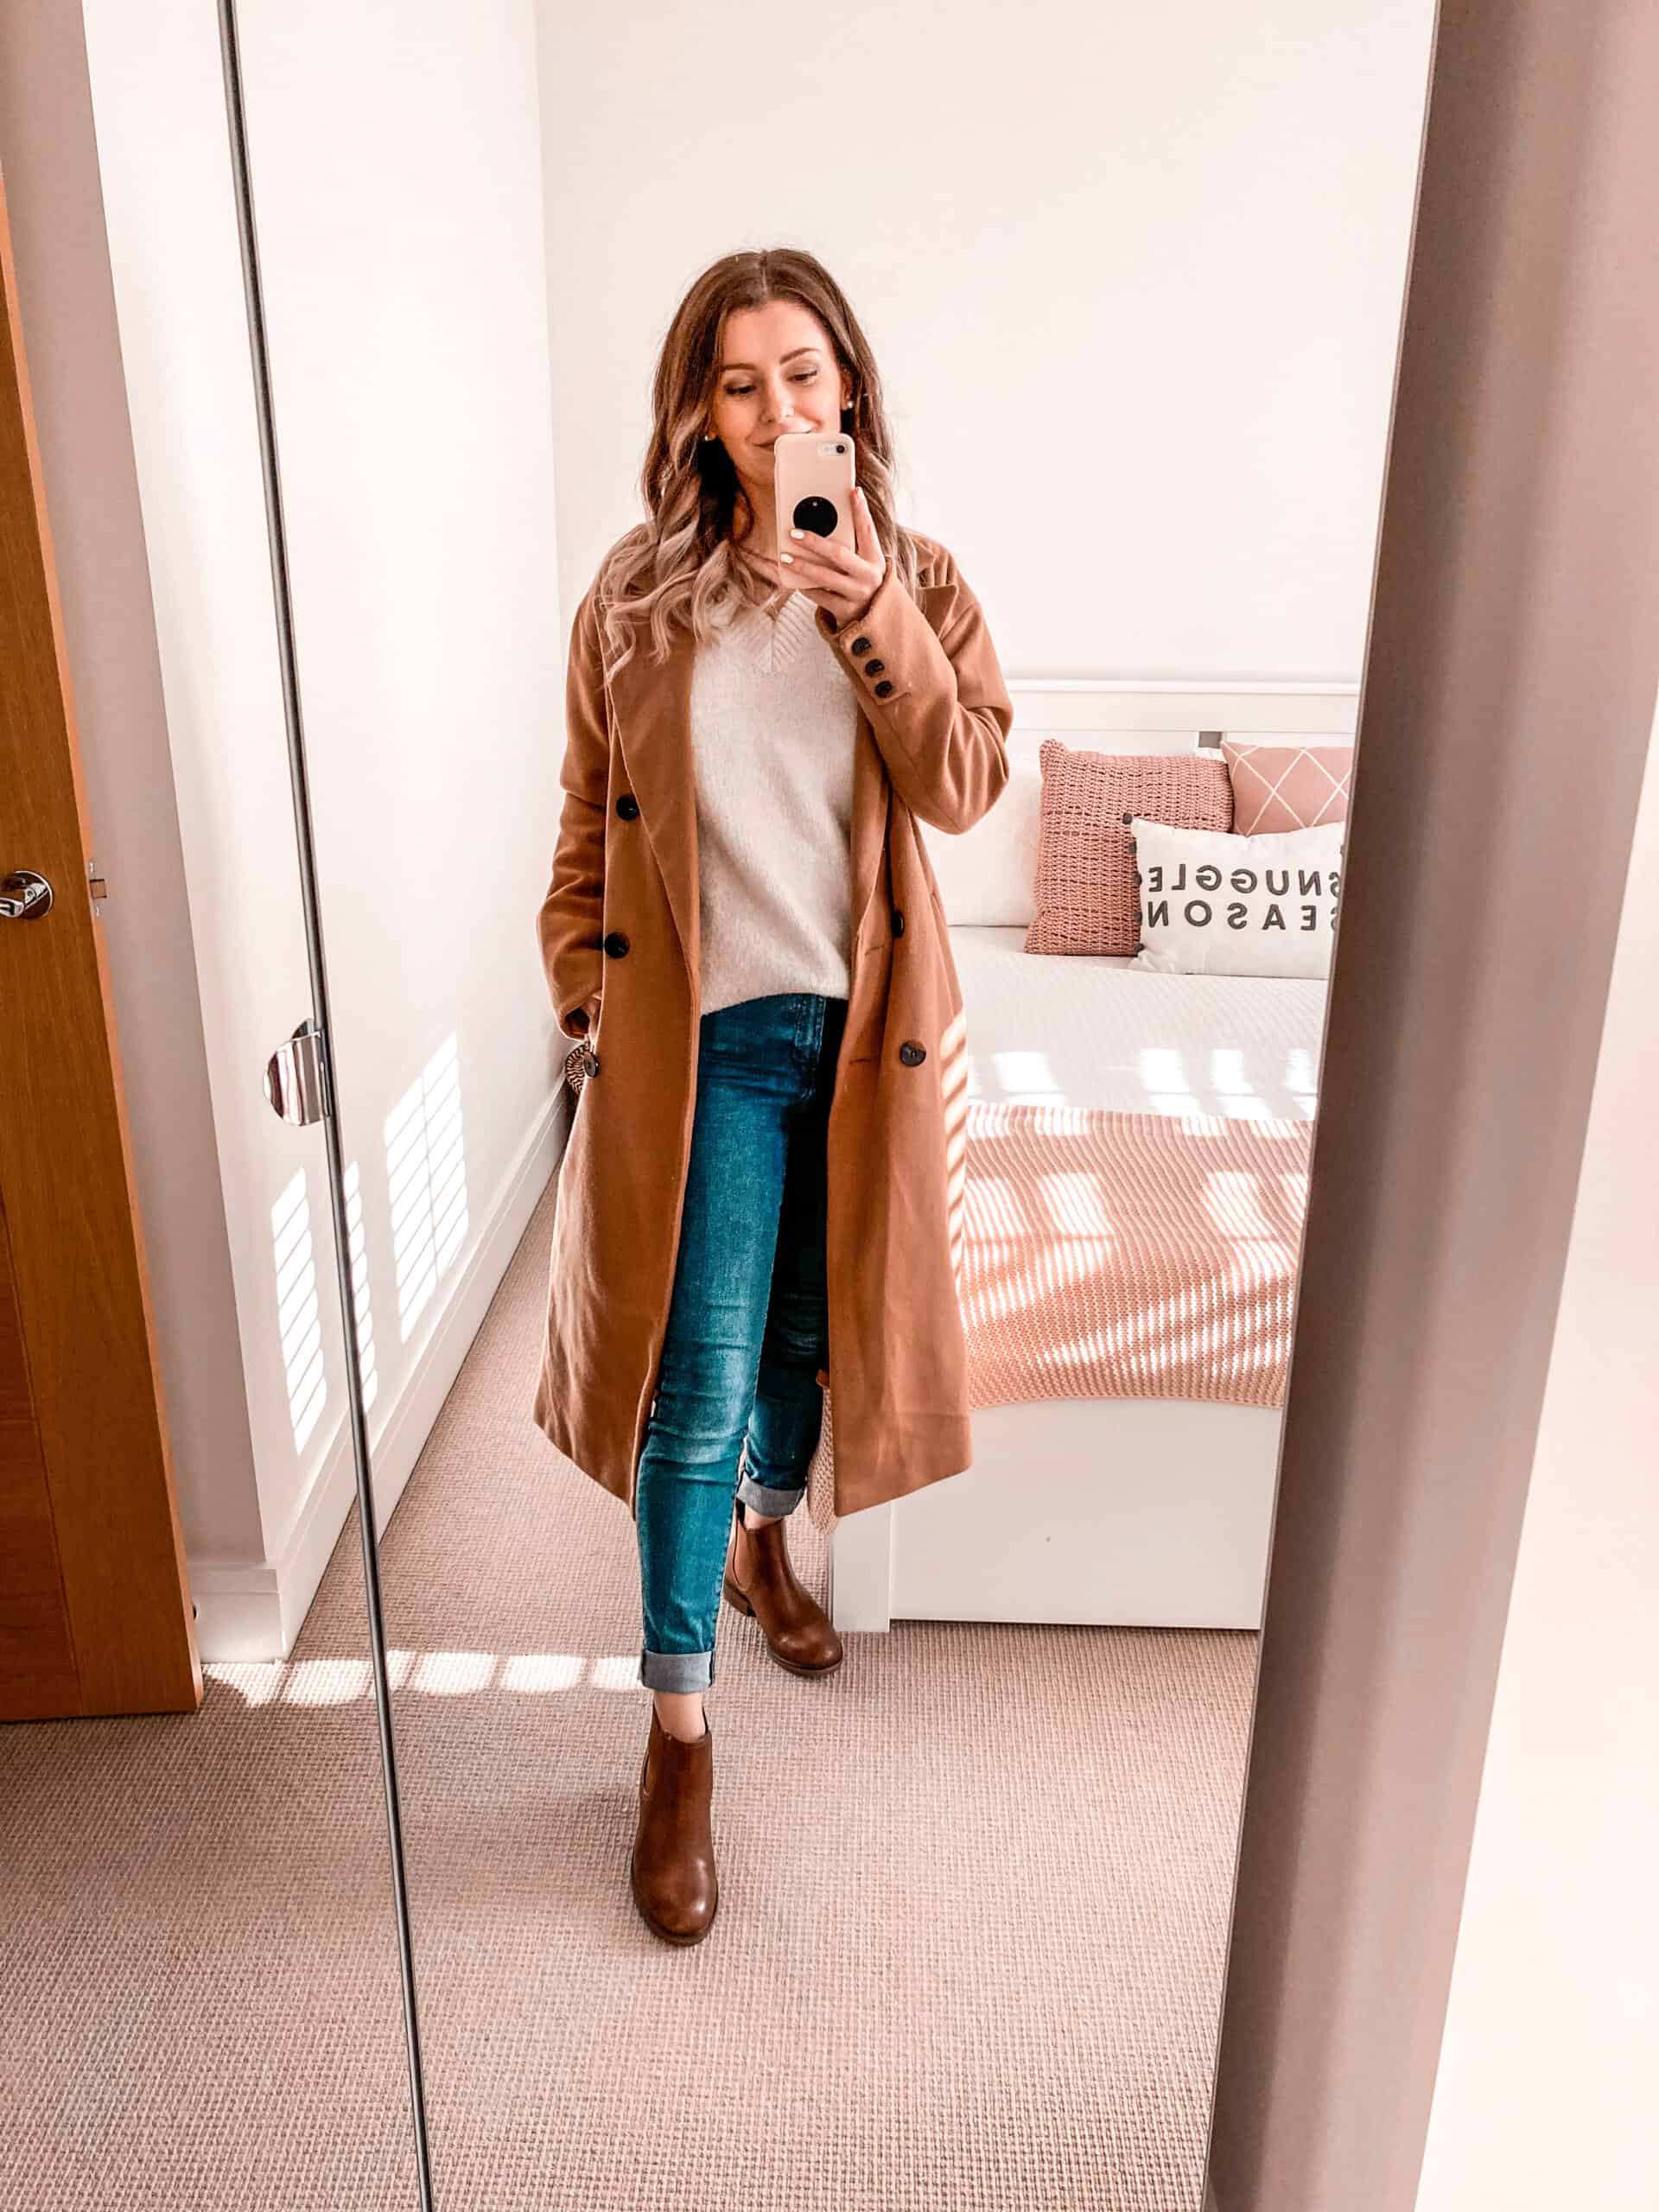 Camel coat oversized knitwear tan chelsea boots autumn outfit